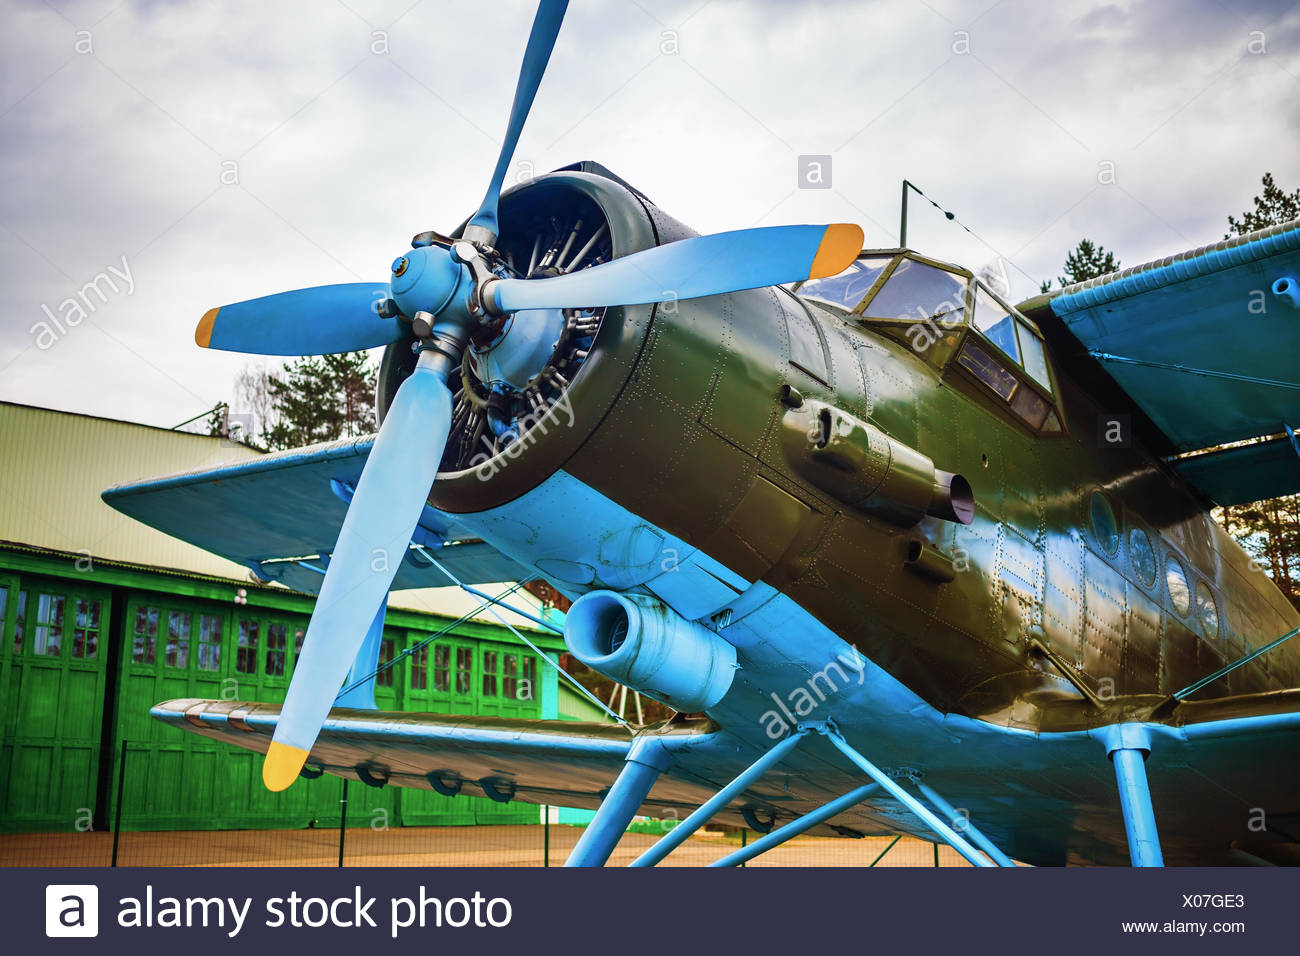 Fuselage of the airplane - Stock Image